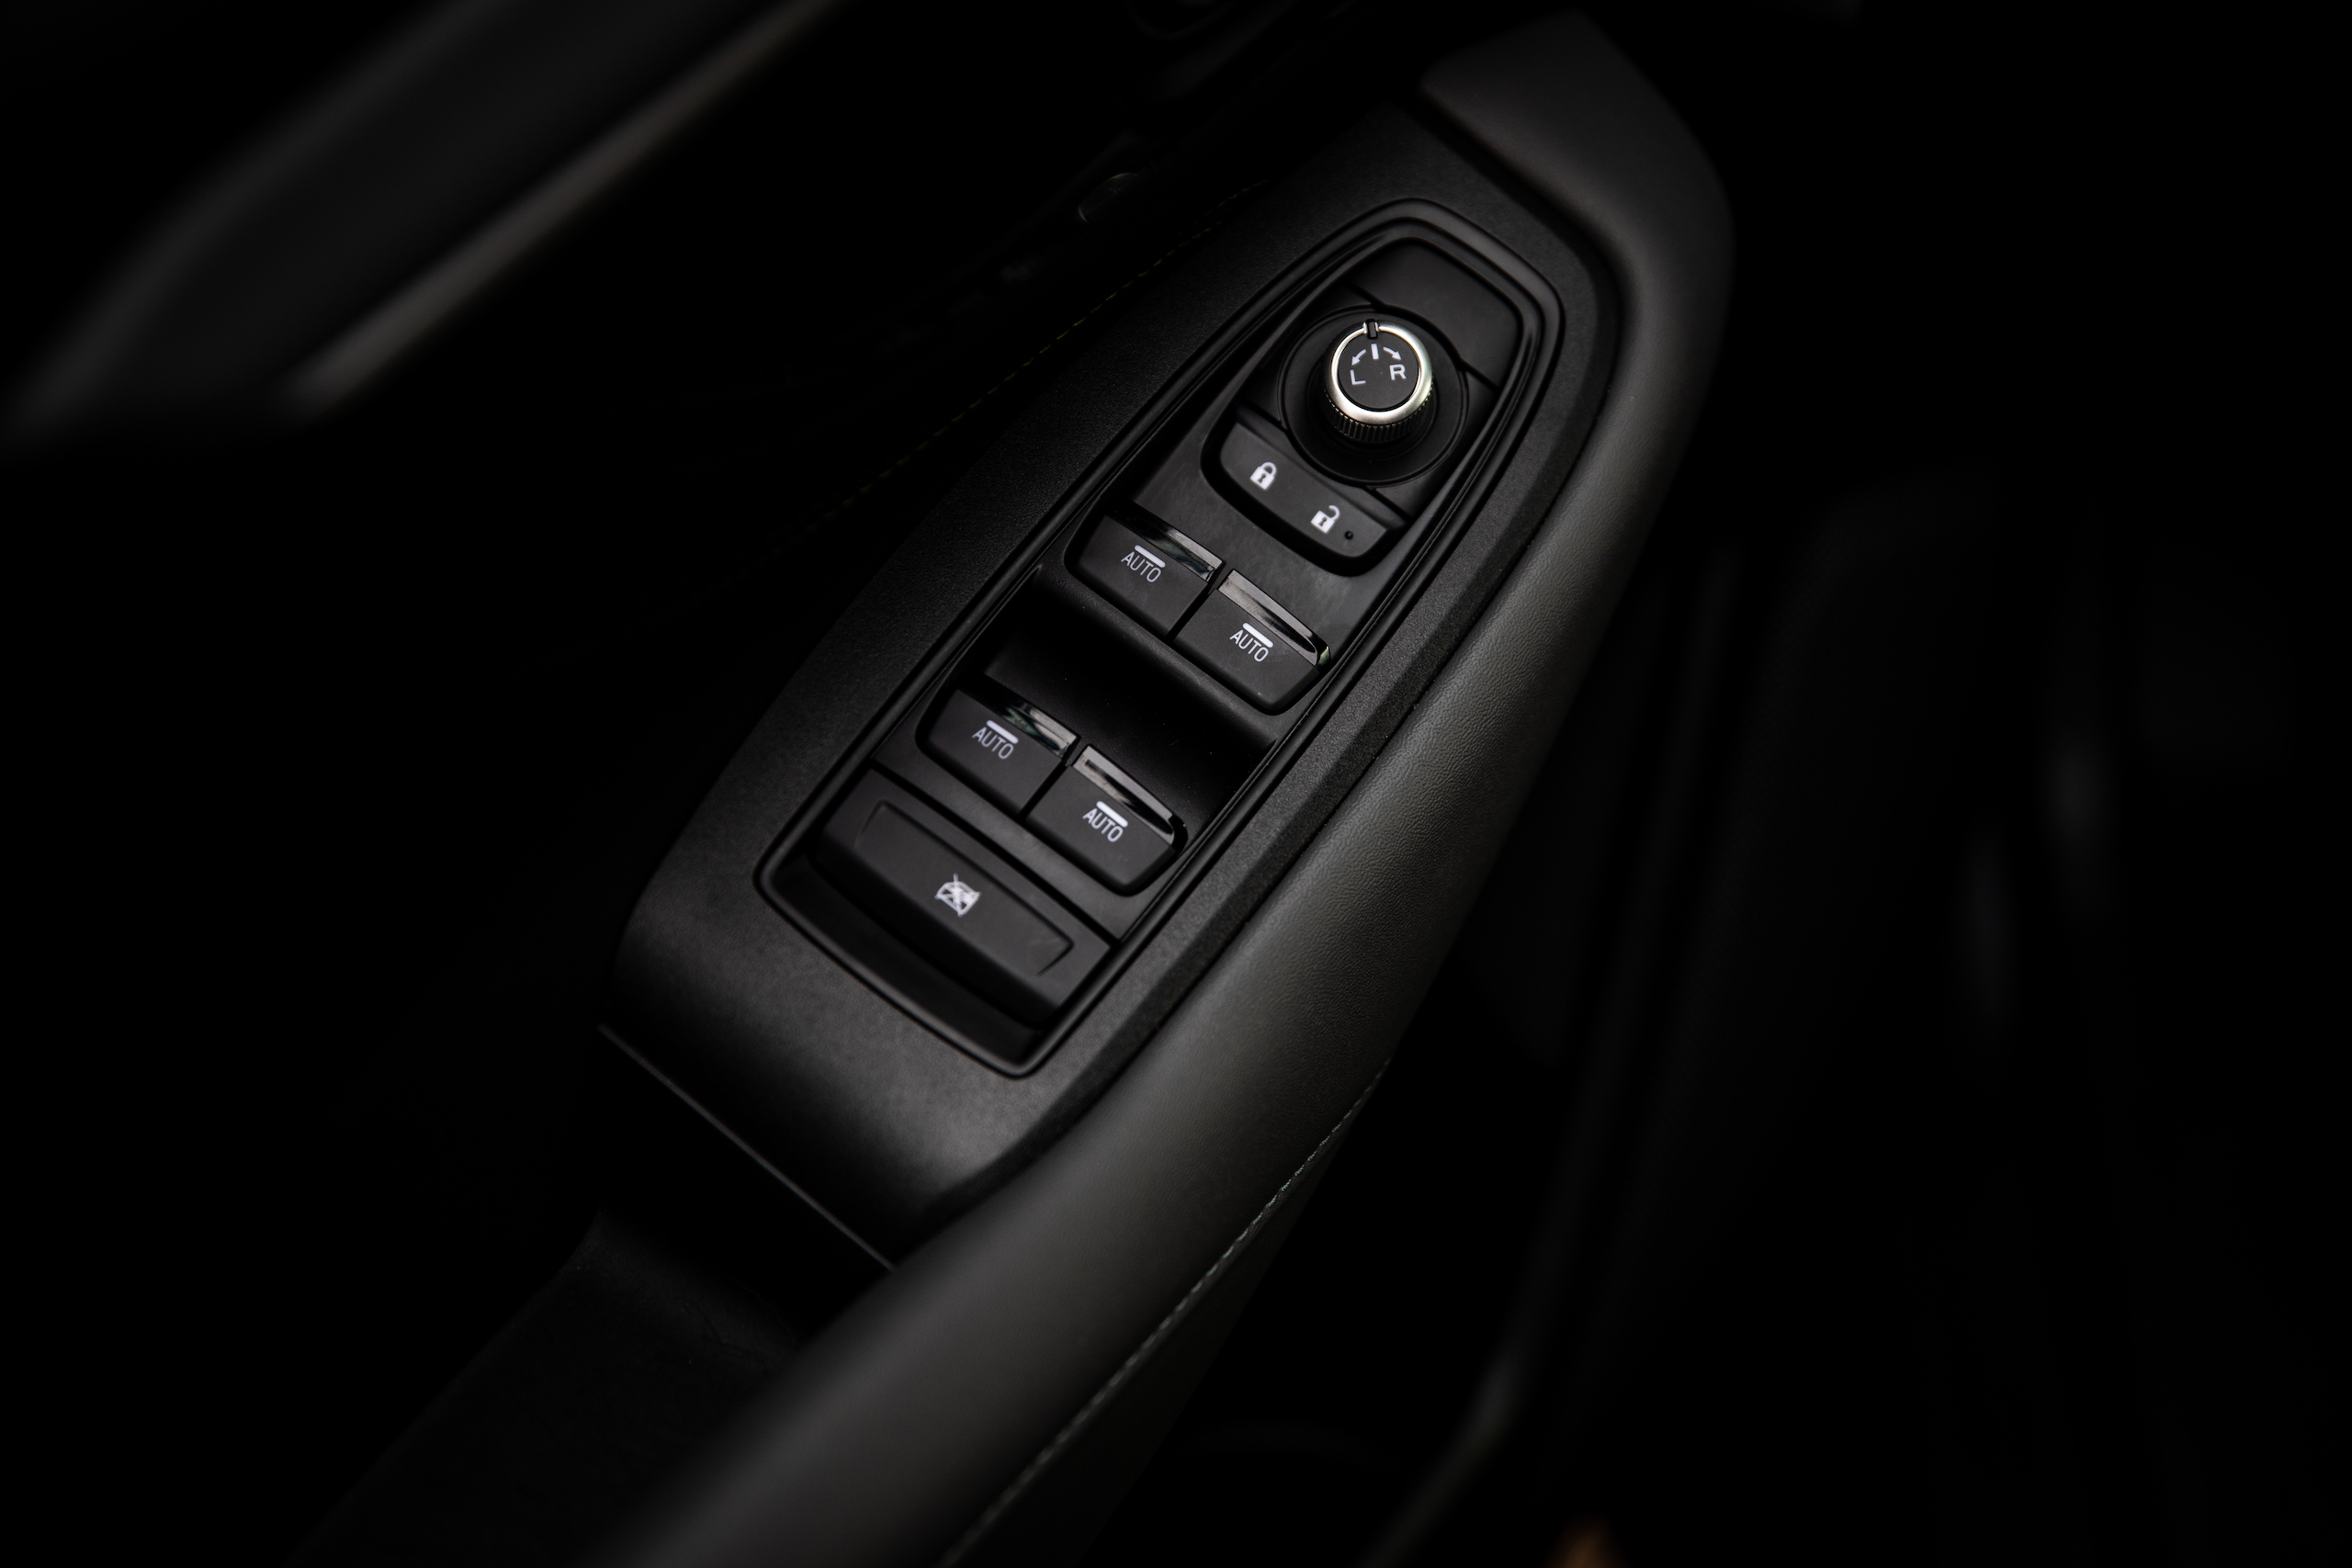 Subaru Outback door panel controls detail